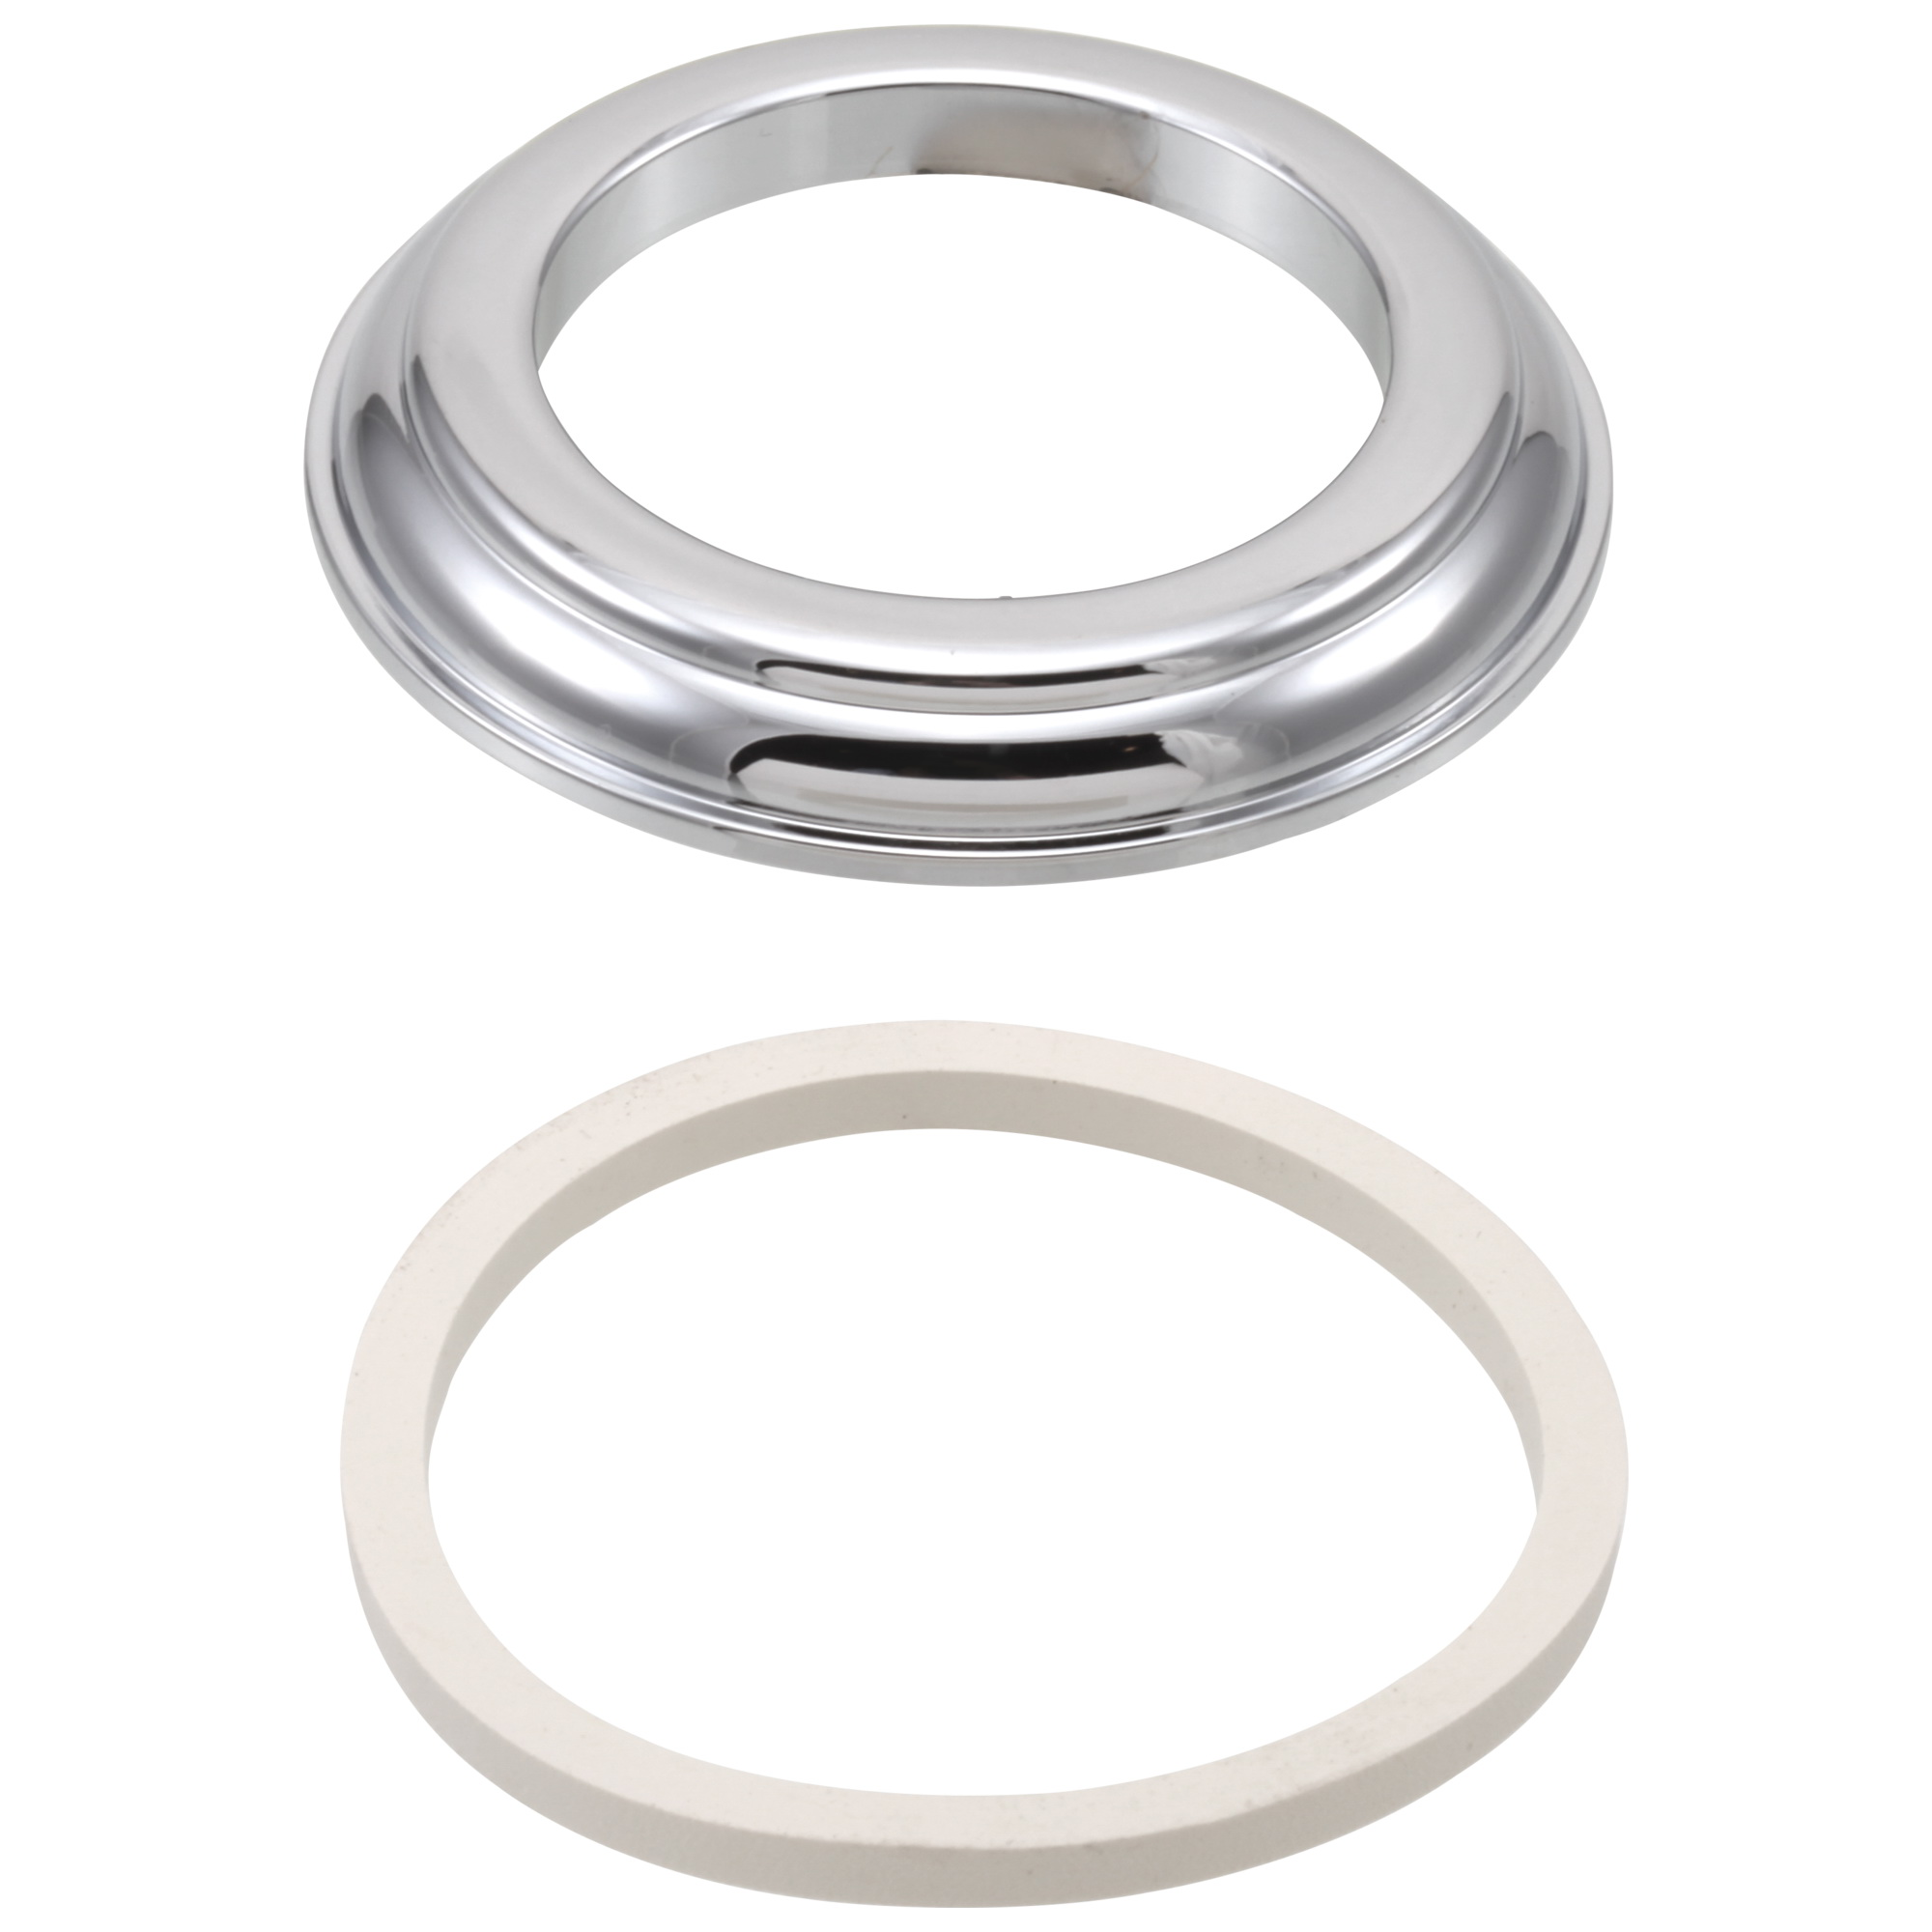 Brizo® RP23611 Base With Gasket, Chrome Plated